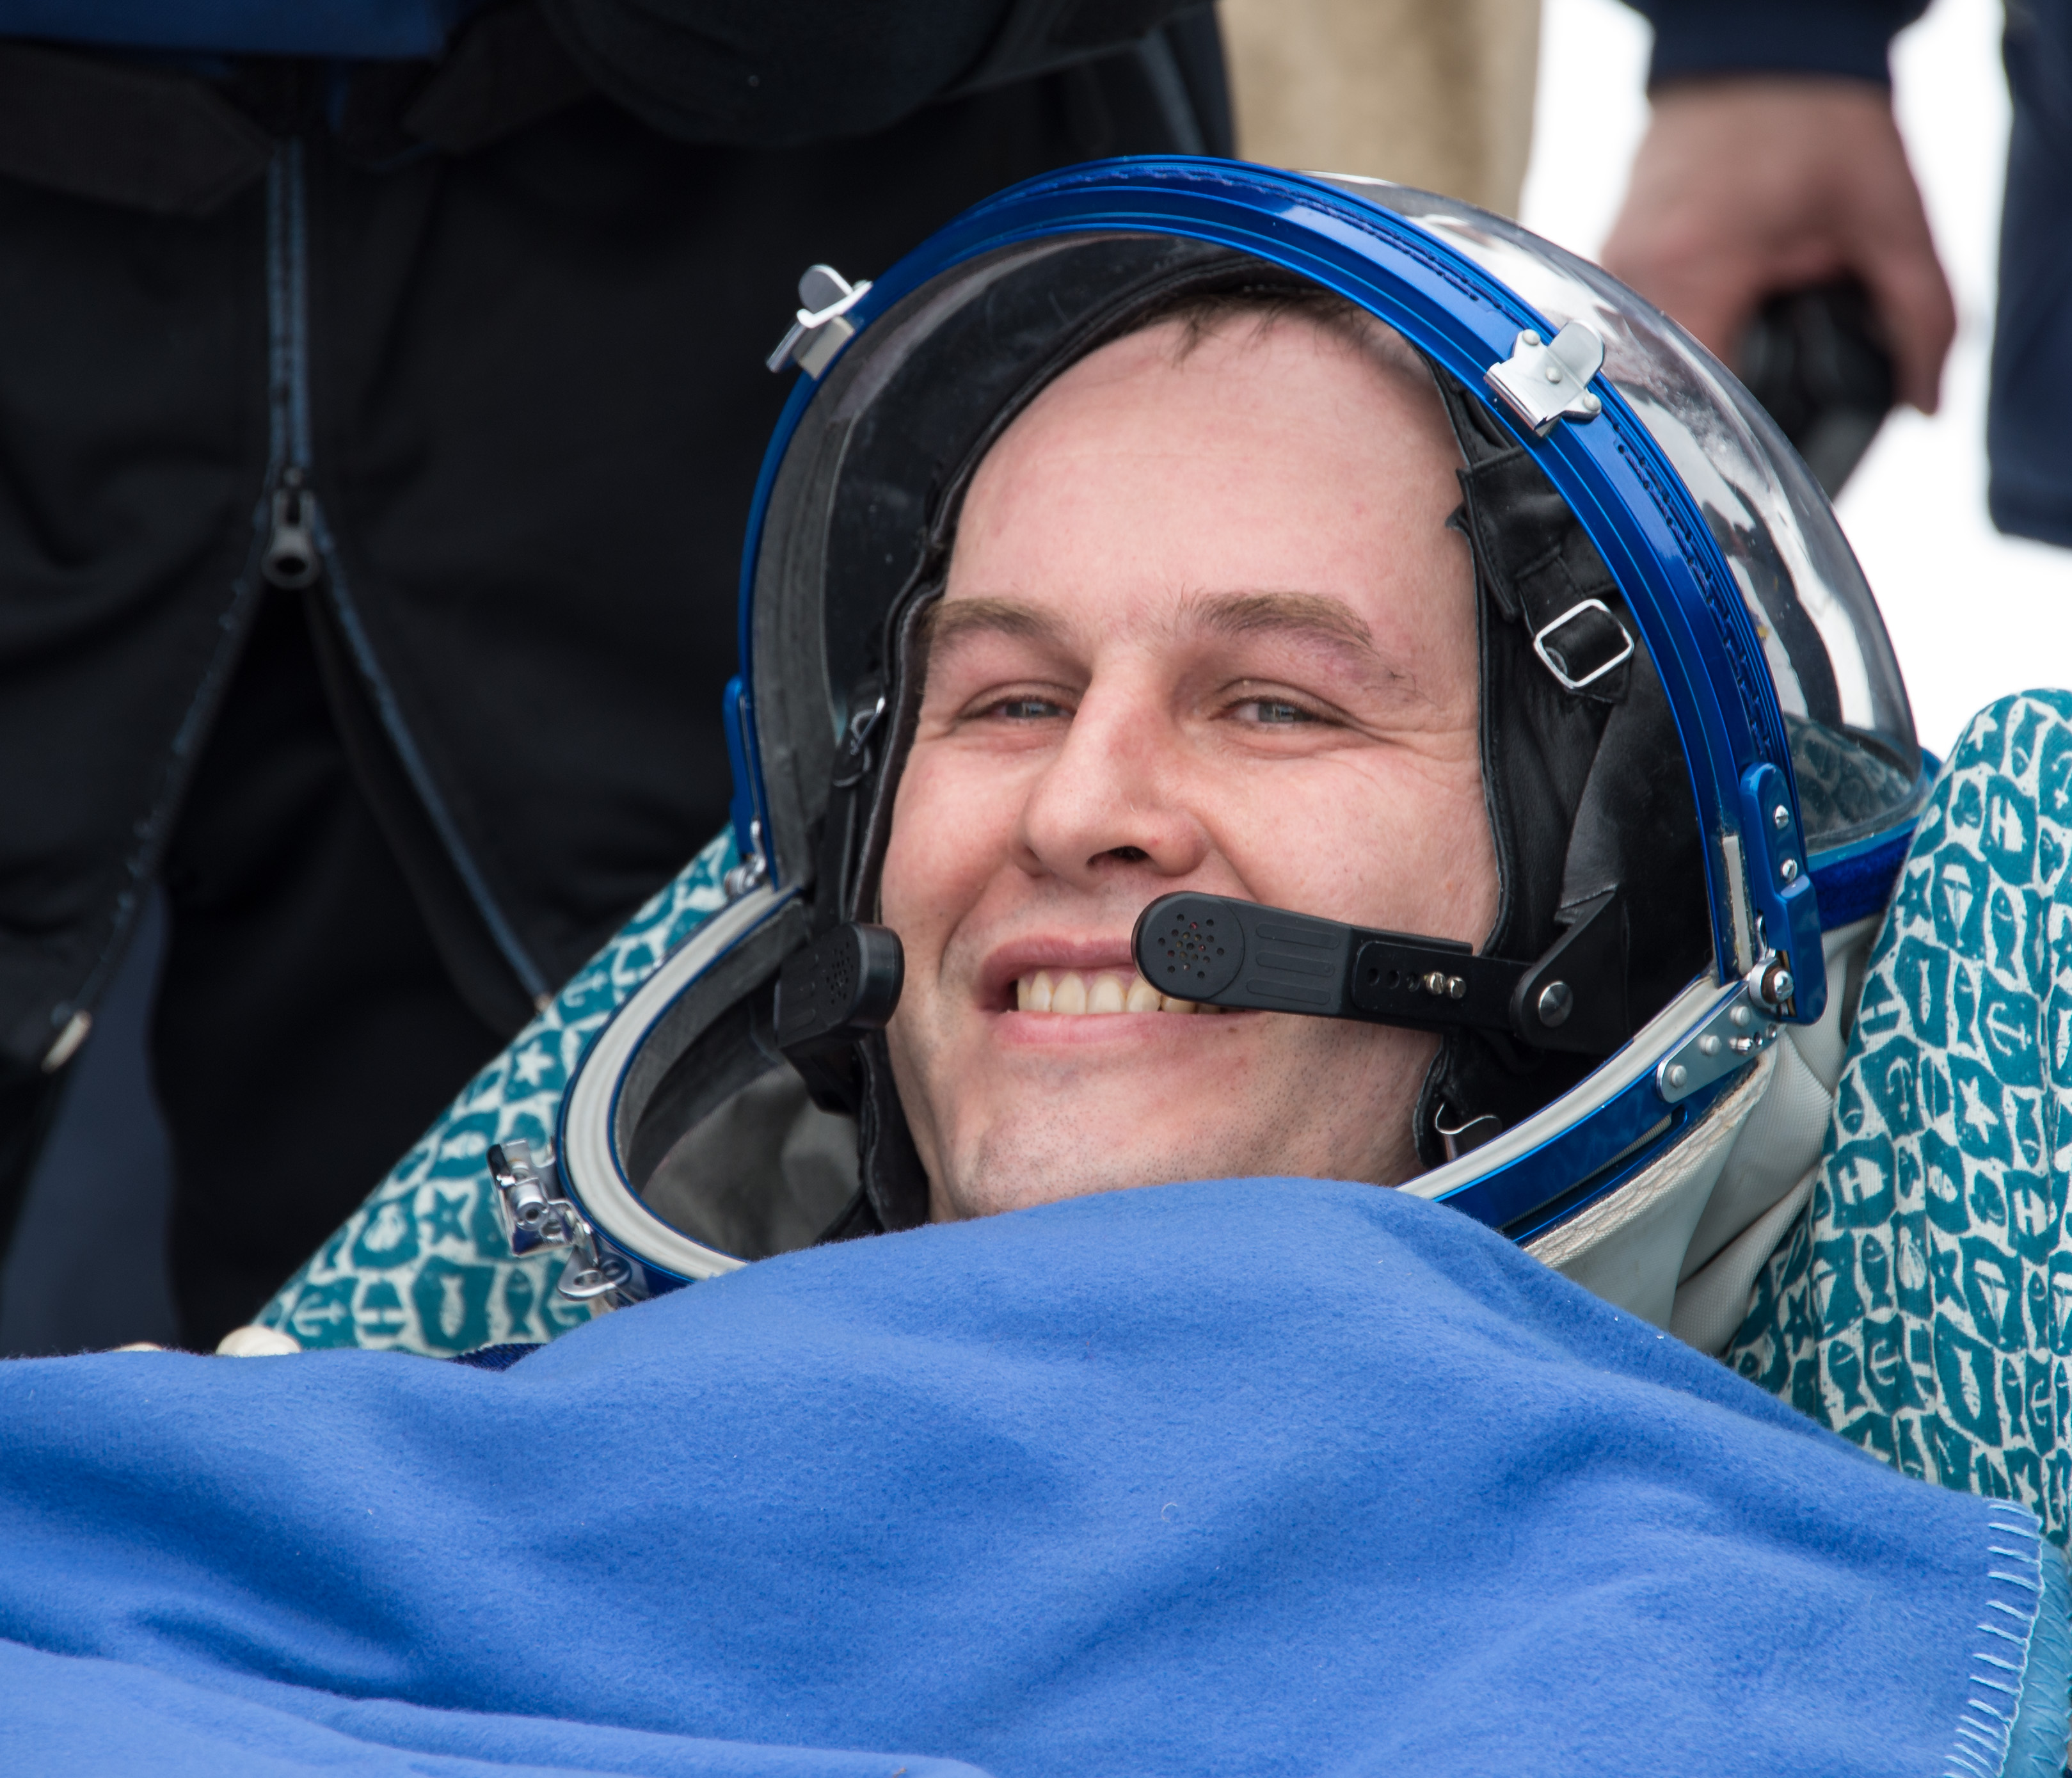 Sergey Ryazanskiy All Smiles After Landing